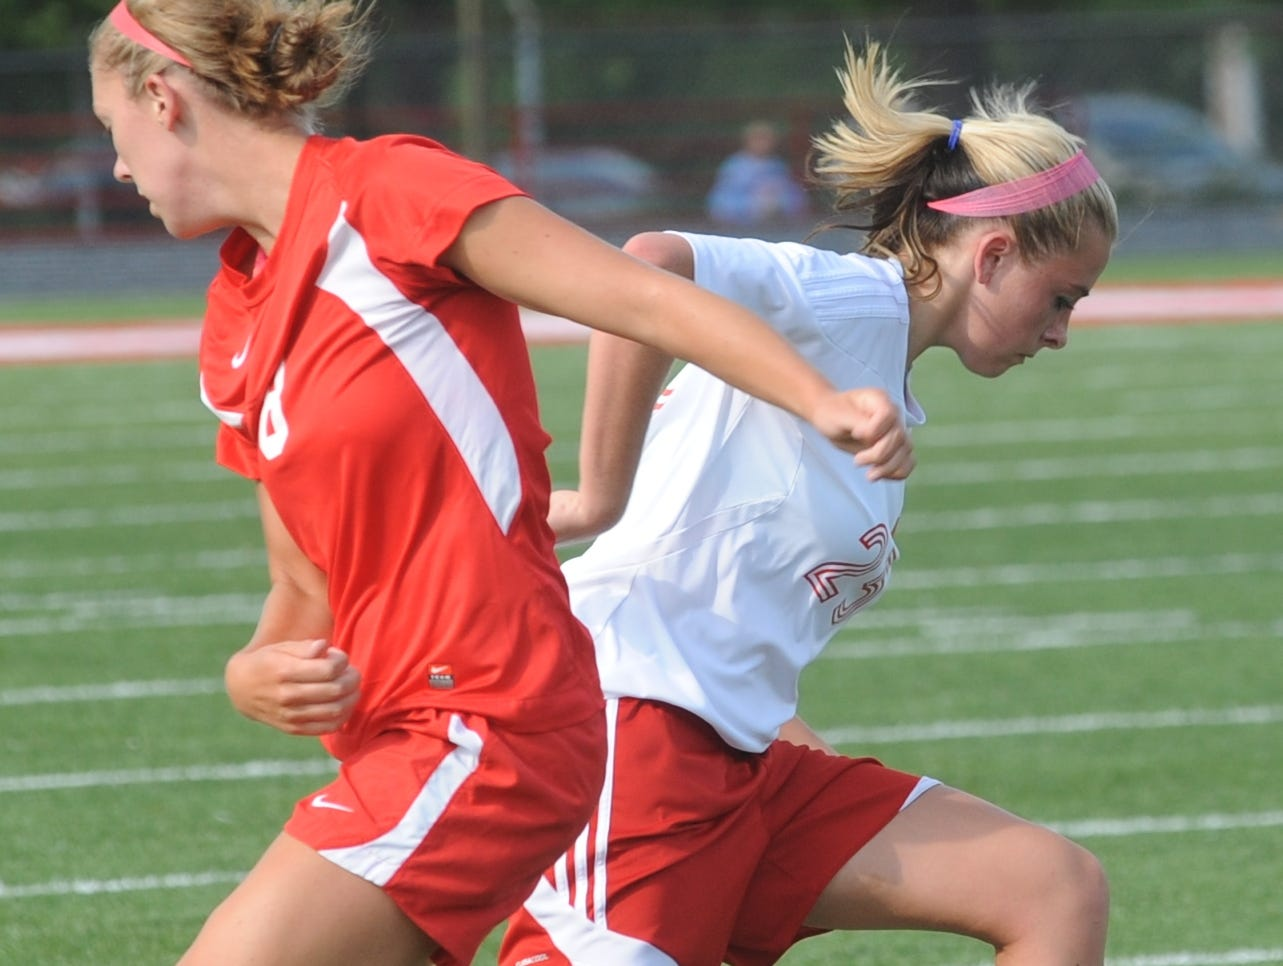 Richmond's Samantha Wilson makes a move around Jay County's Sophie Bader on Tuesday at Lyboult Field.